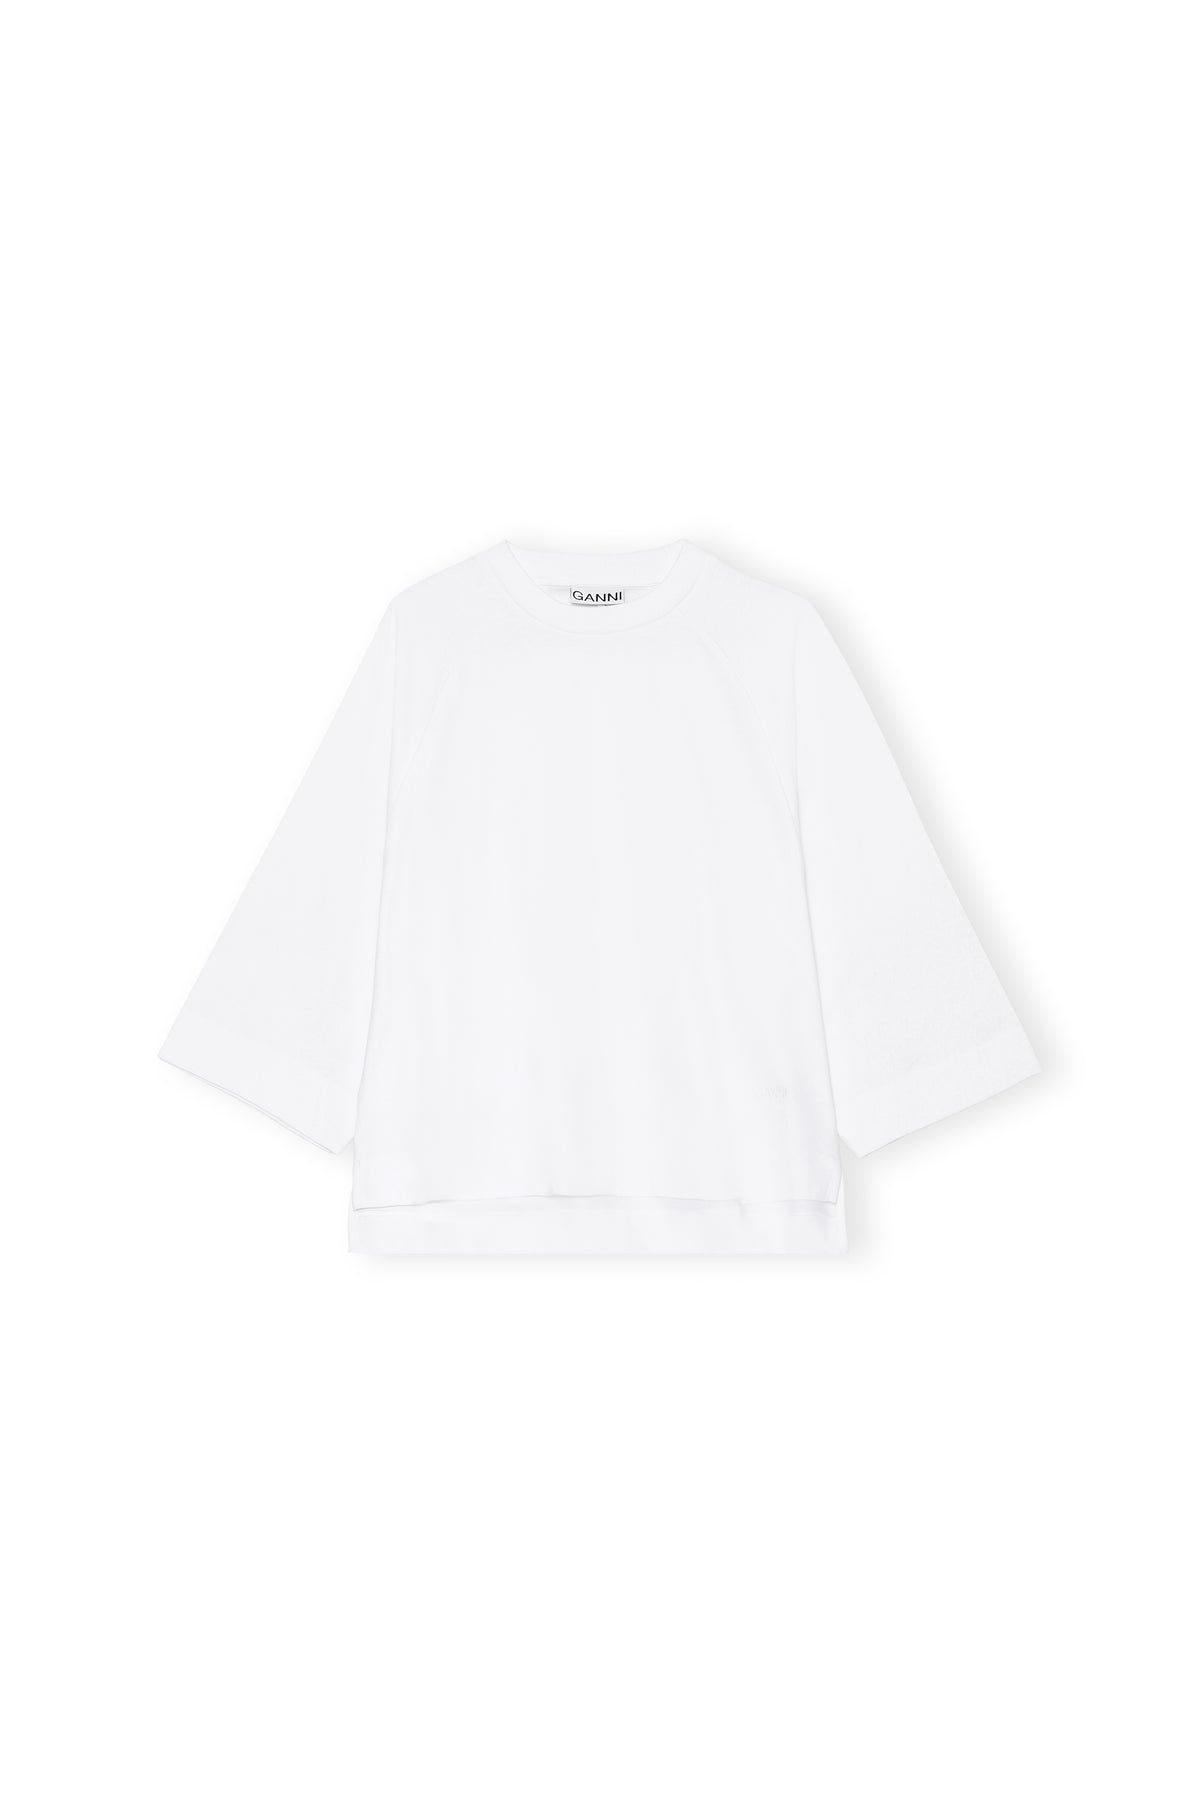 Ganni - Oversized T-shirt | Bright White